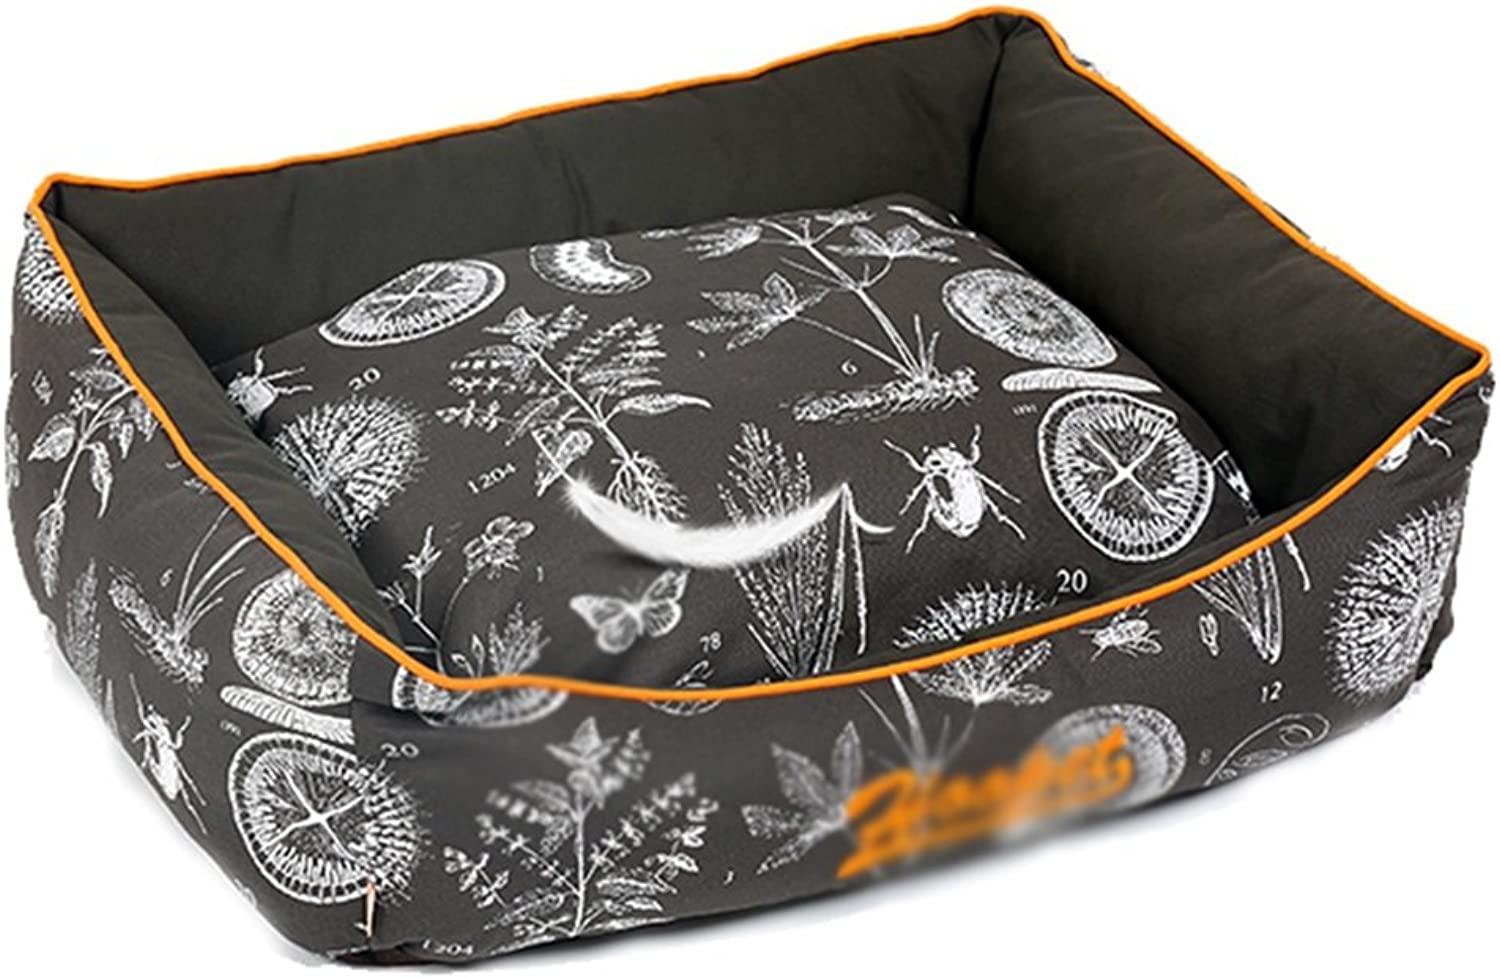 Kennel can be washed and removed four seasons common dog bed PP cotton cave warm ( Size   S )